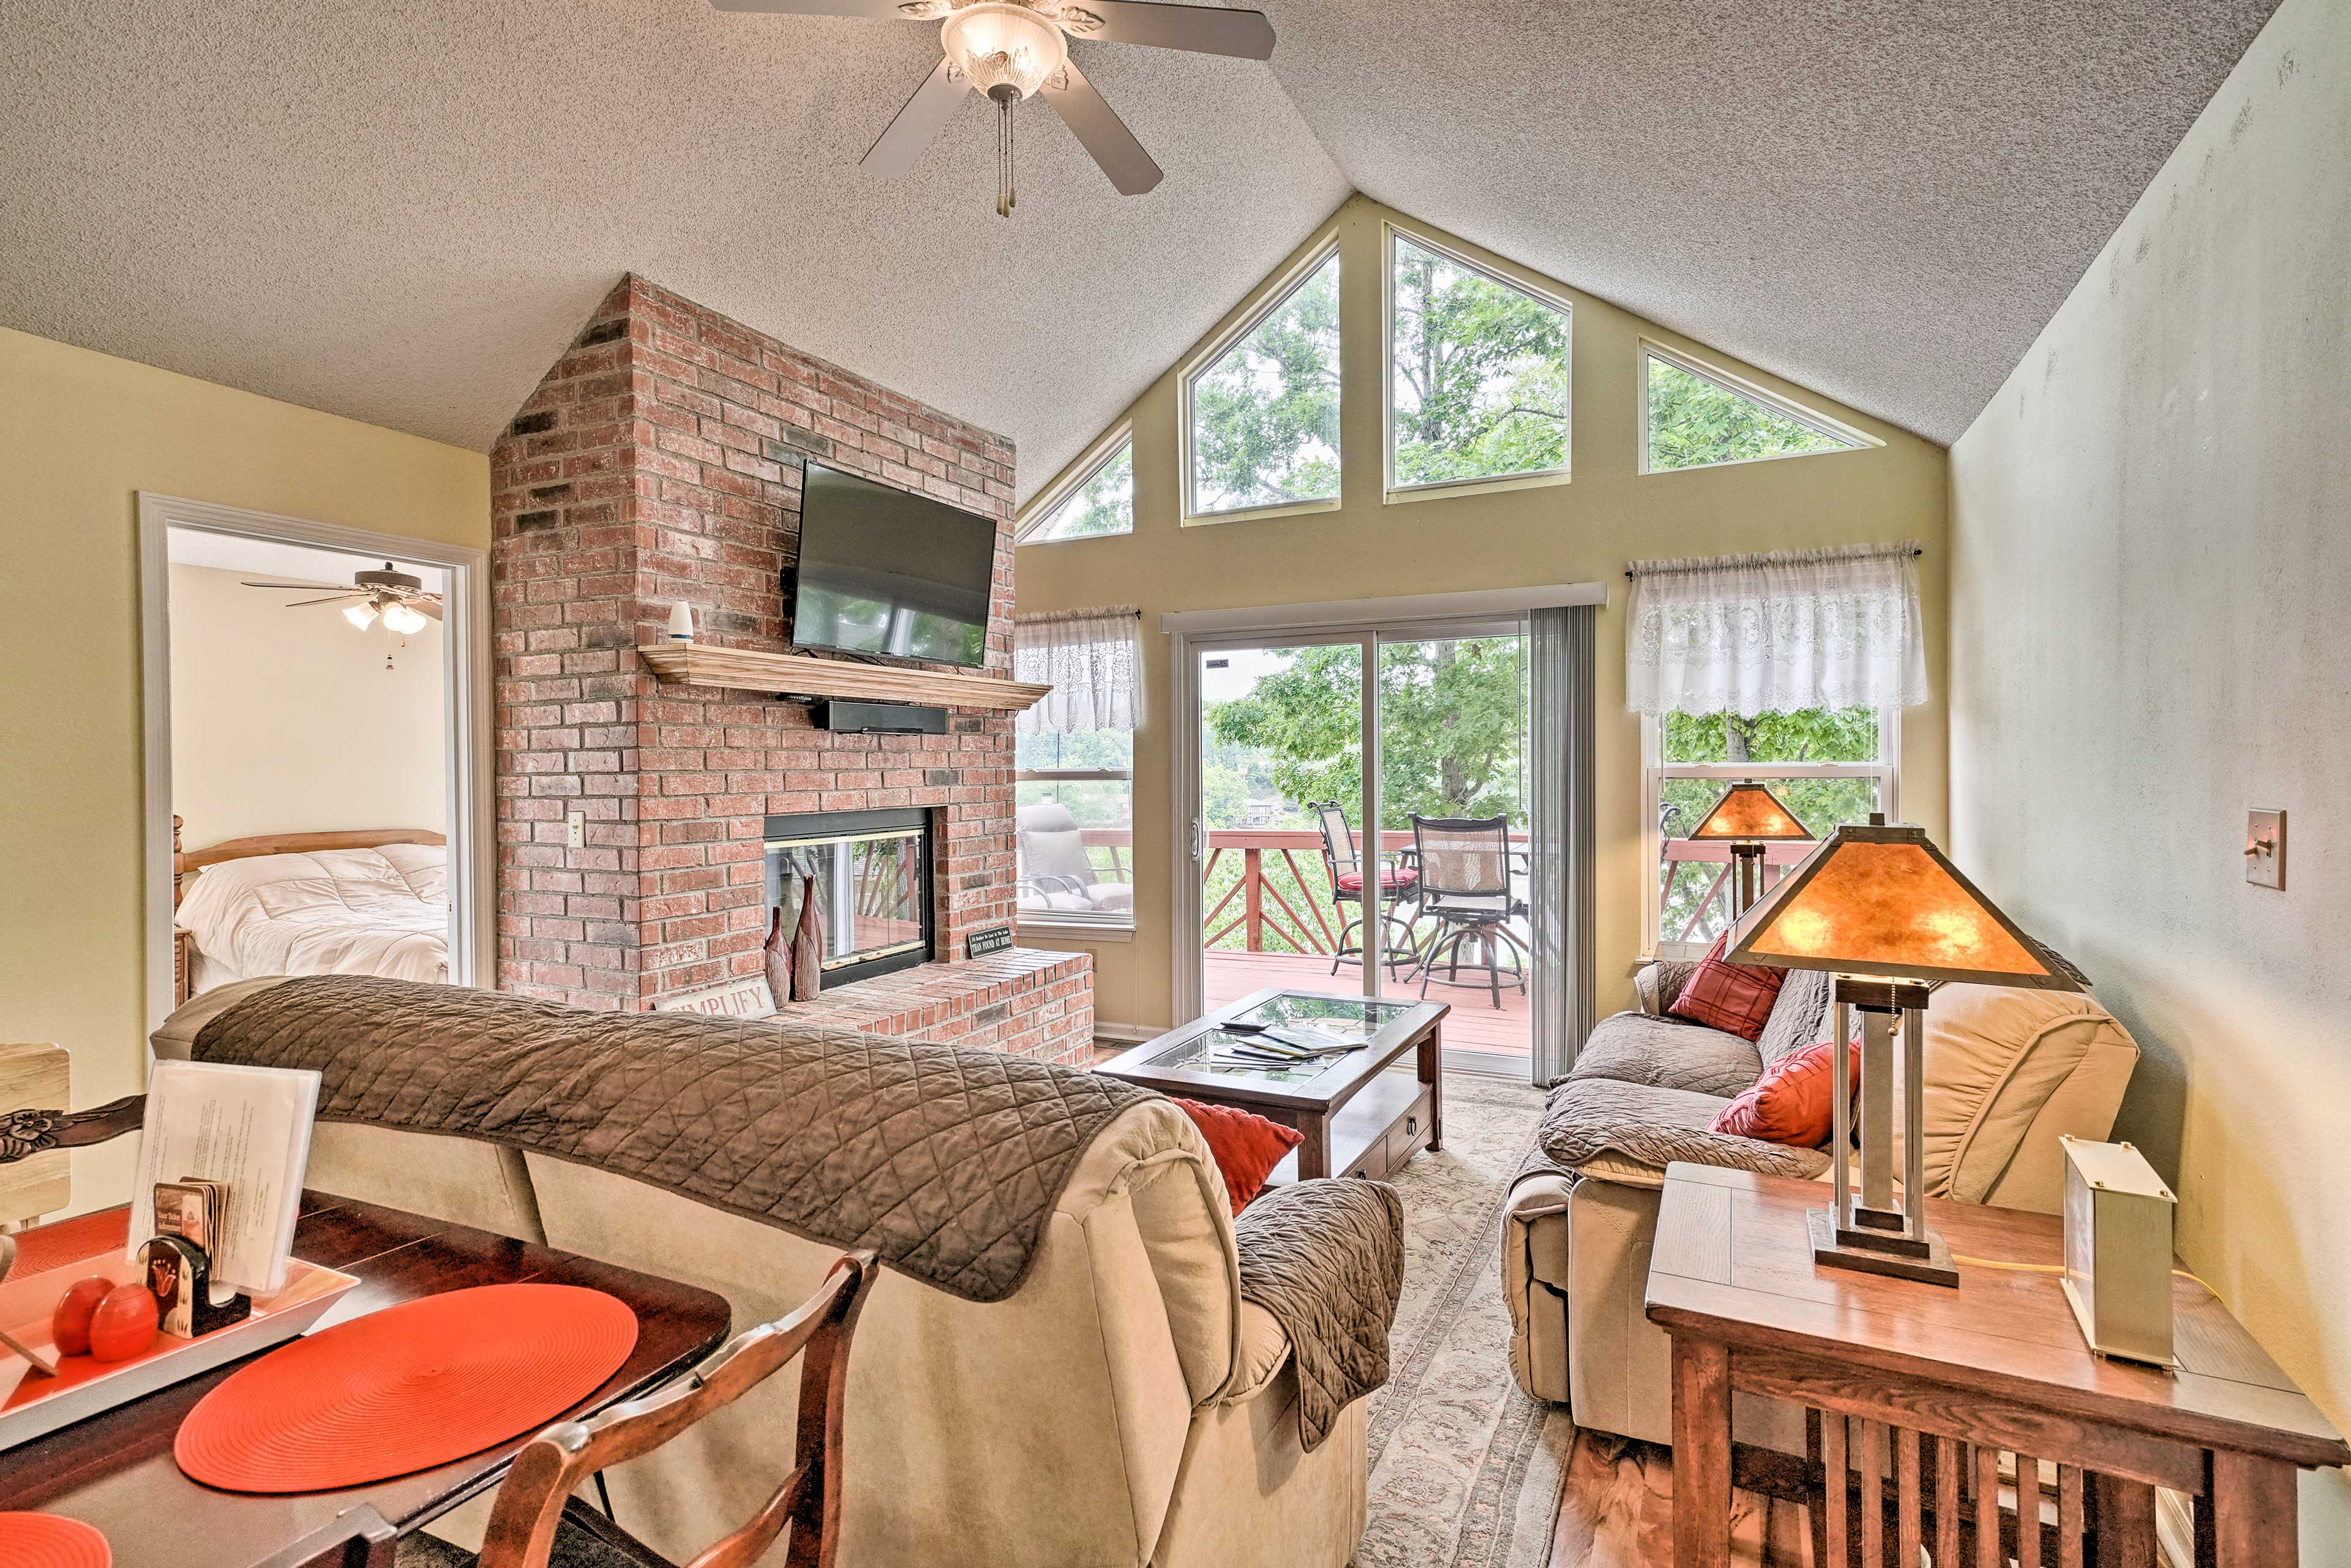 Leave your worries behind when you arrive at this Lake of the Ozark home!